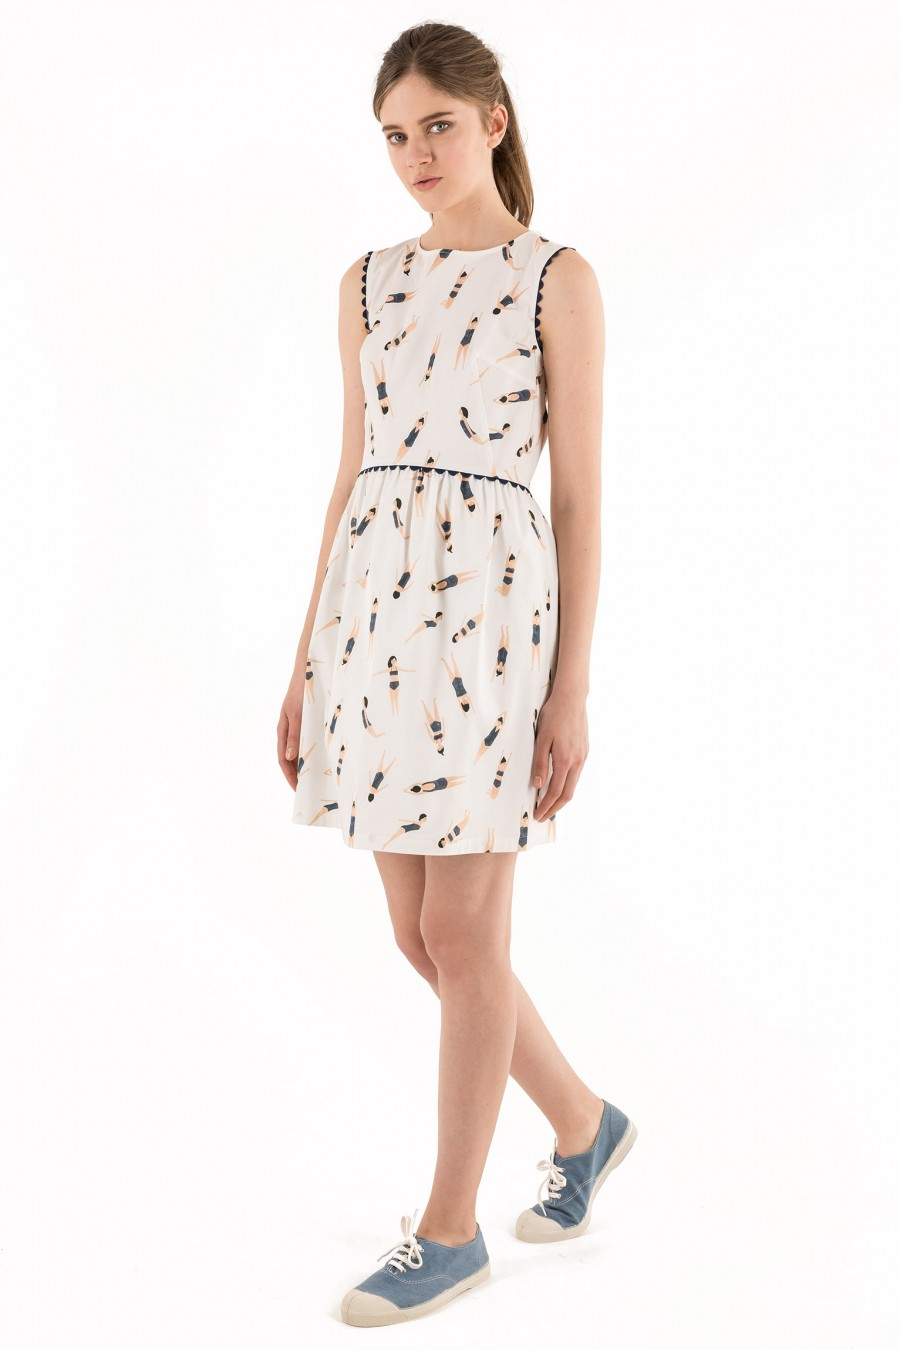 Dress with illustrations by Kate Pugsley